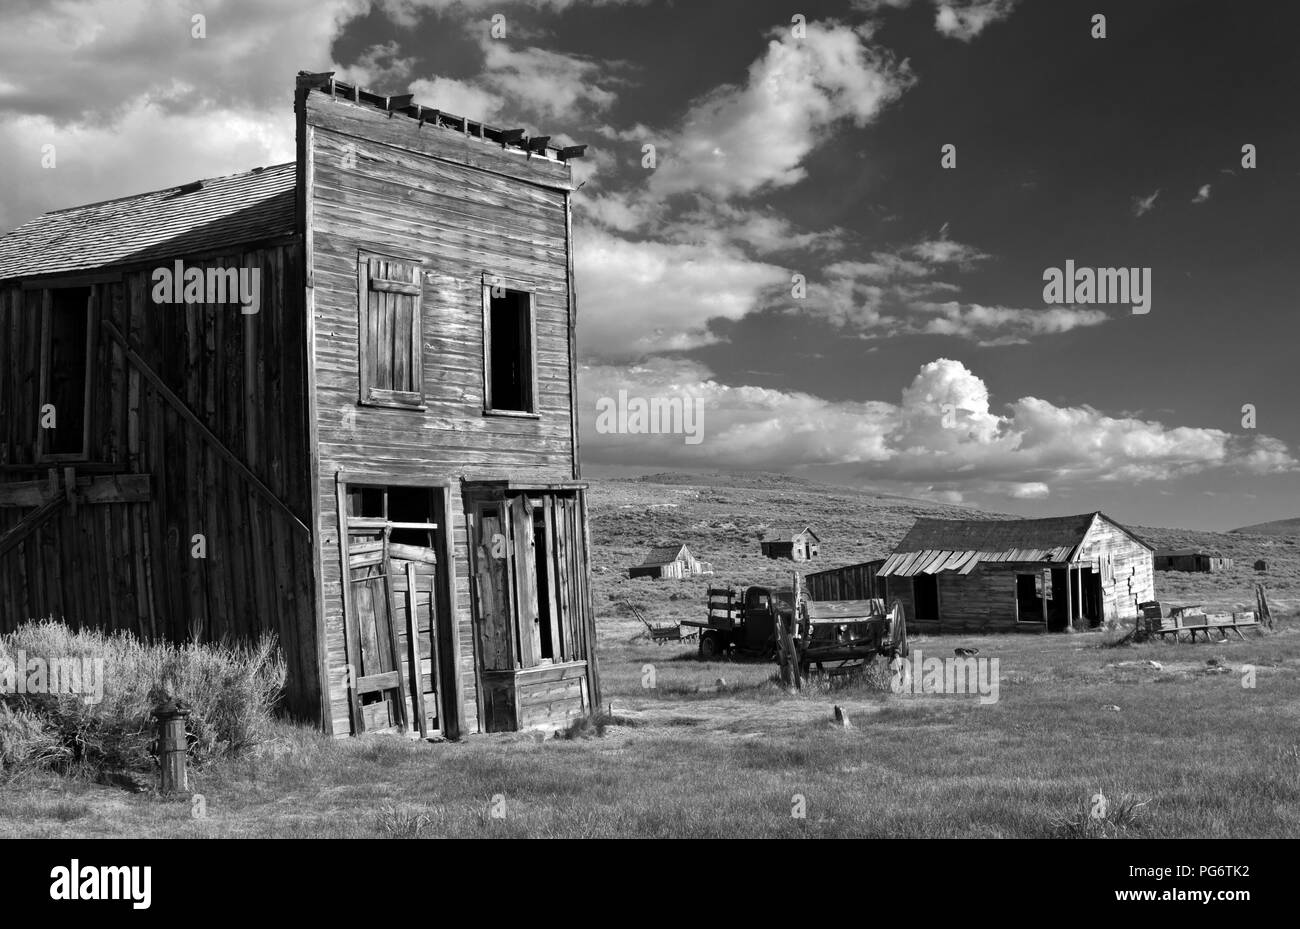 The Ghost Town of Bodie in Eastern California, United States. - Stock Image